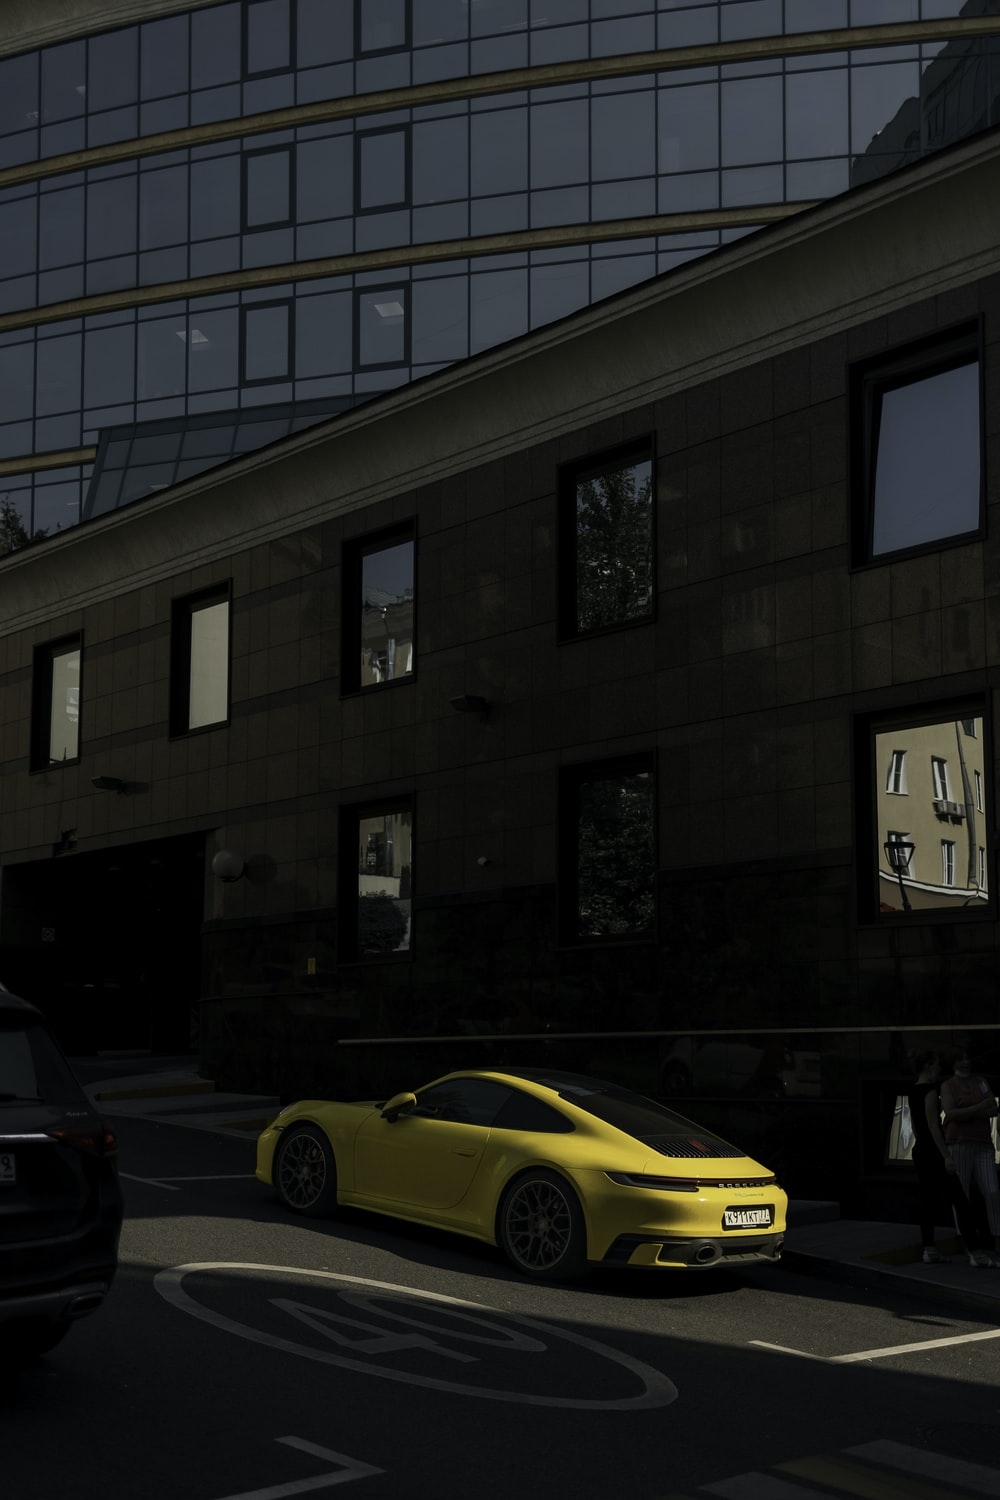 yellow car parked in front of brown building